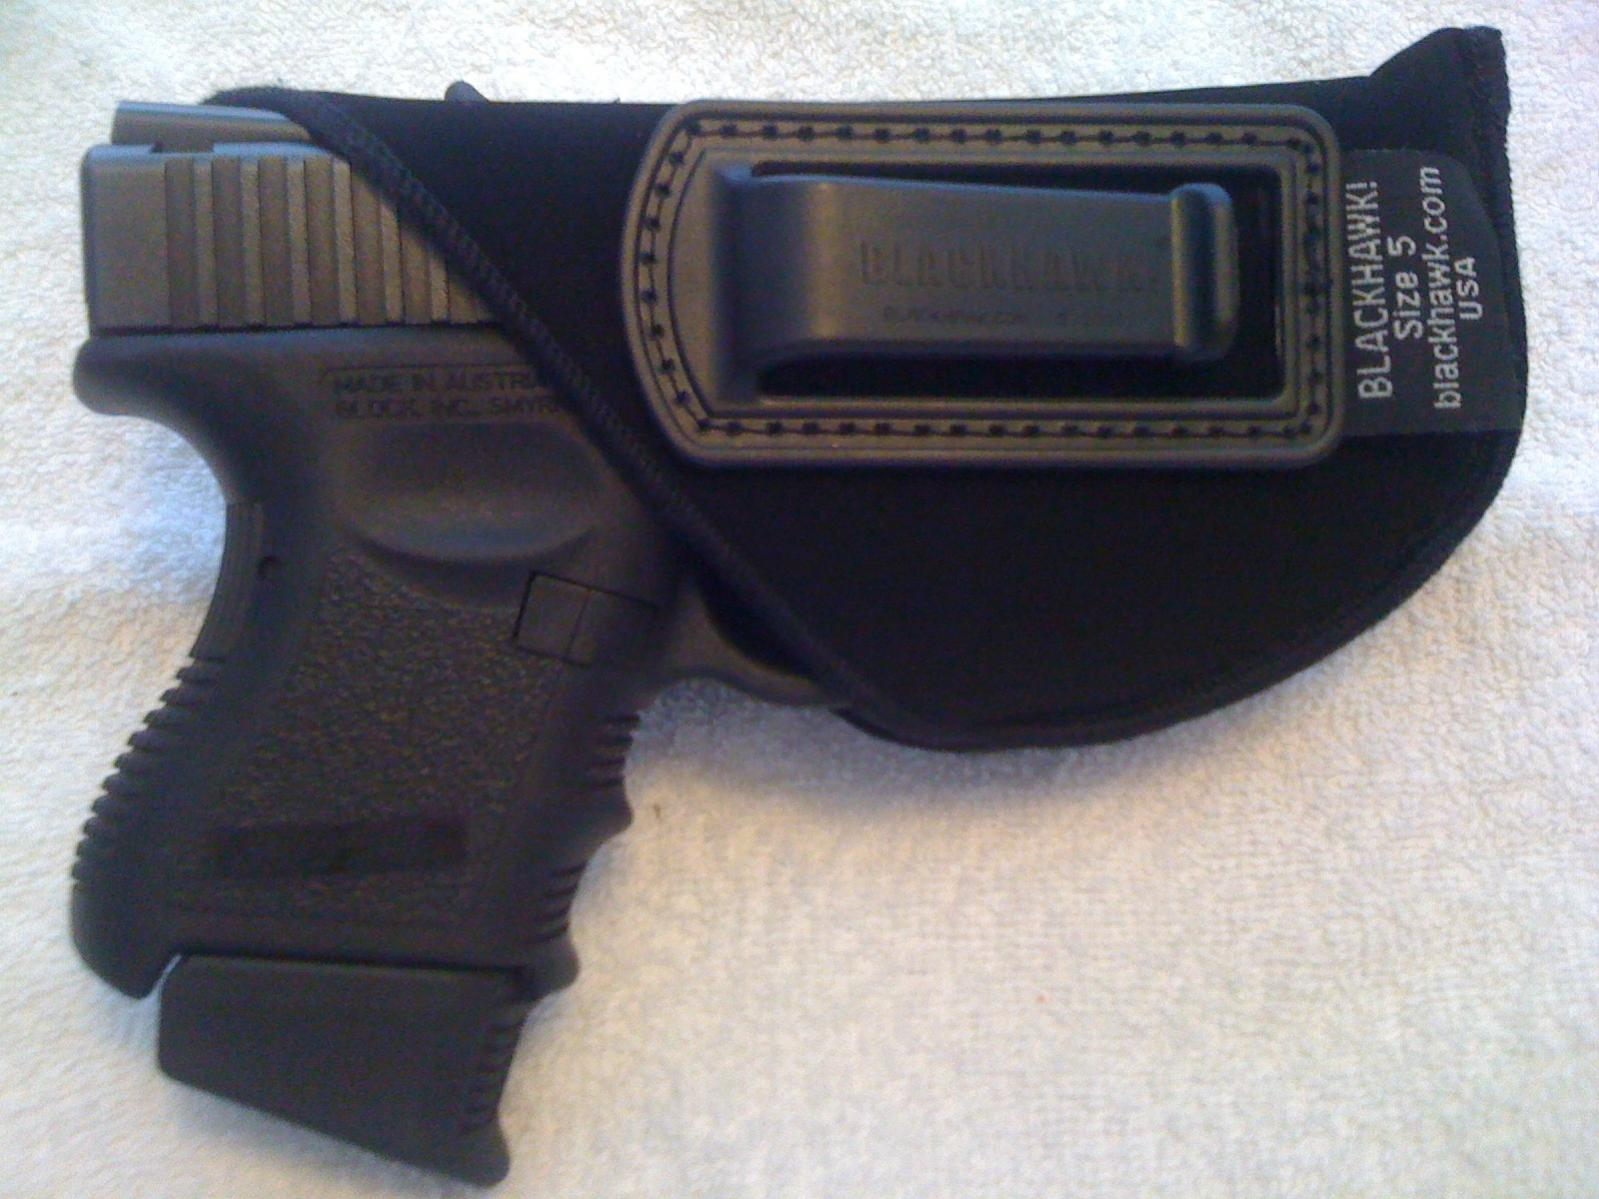 Another glock!!!-photo-3-.jpg